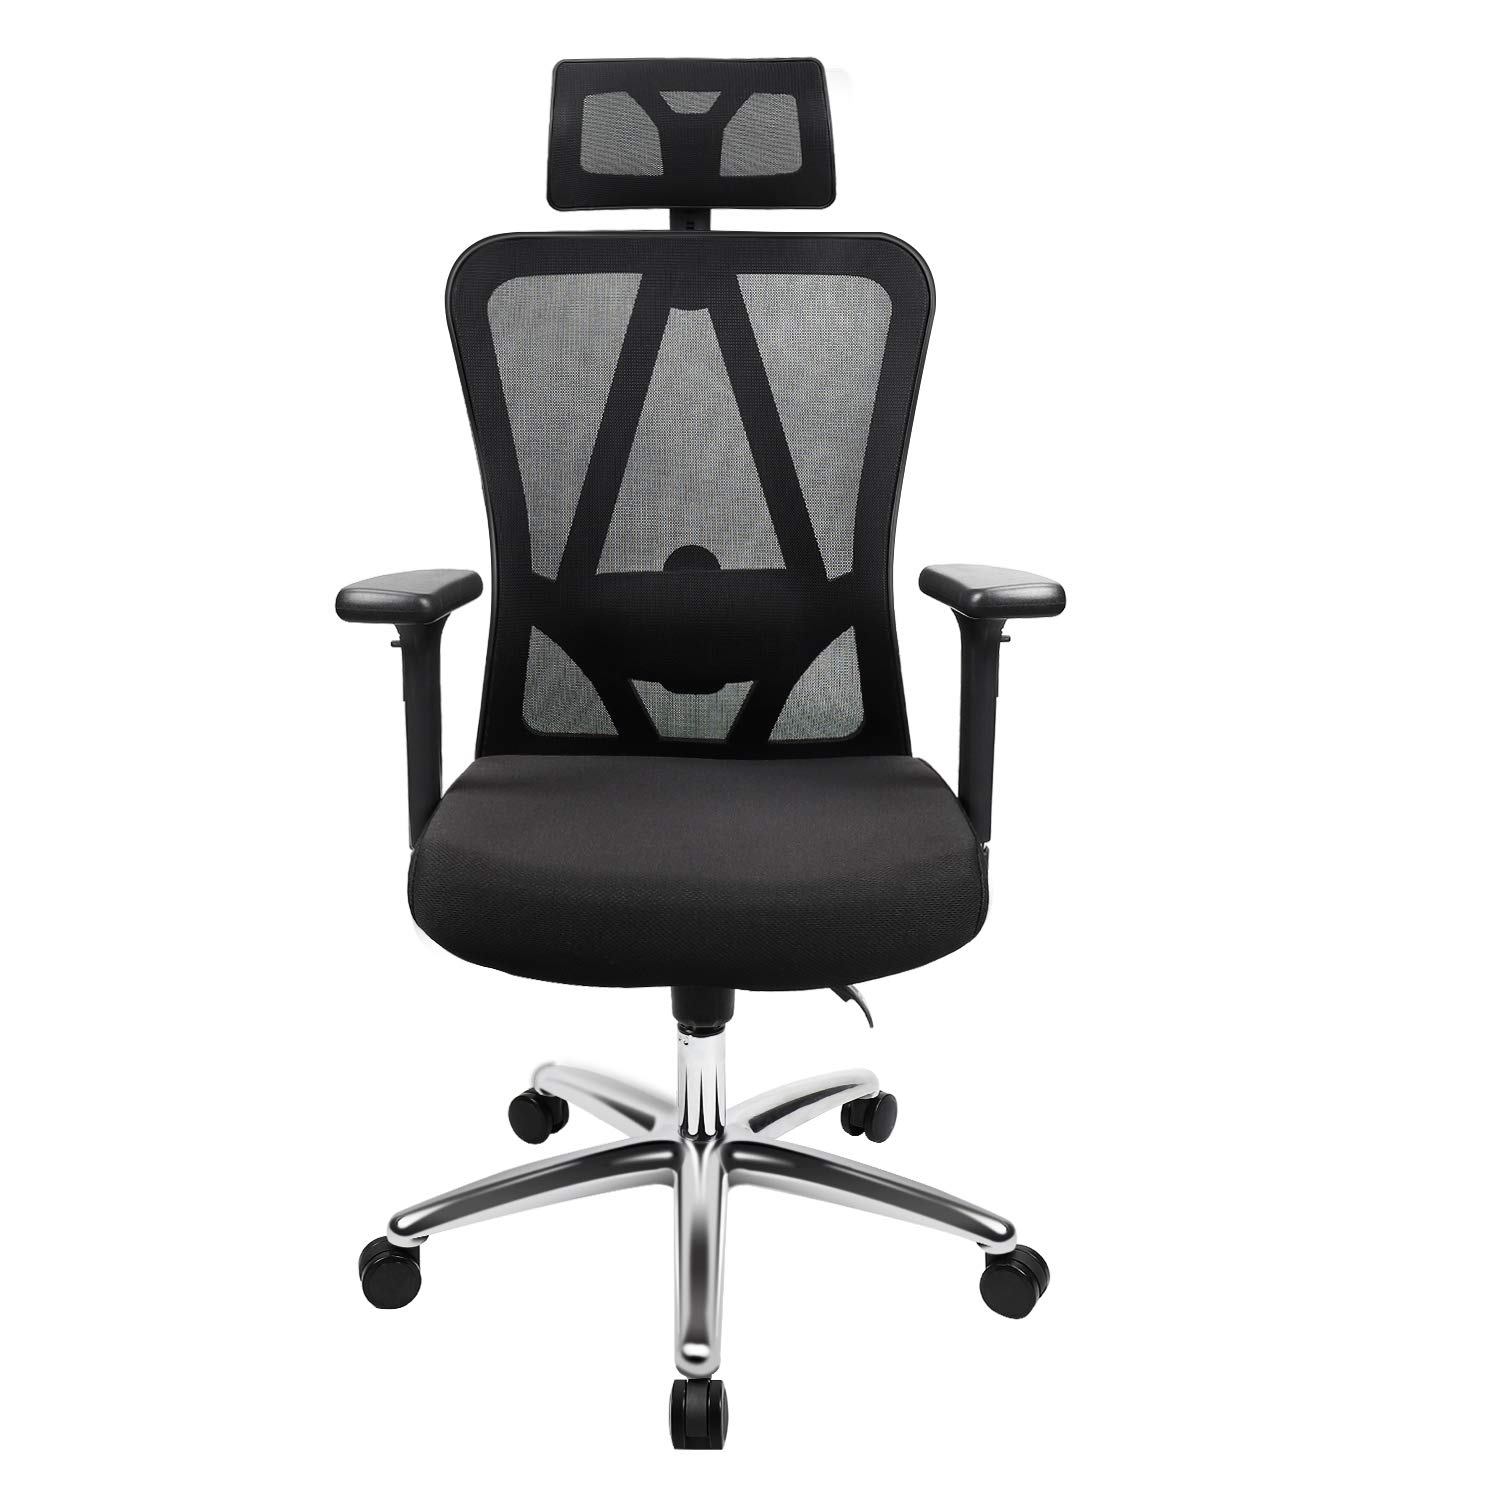 TOPVORK High Back Mesh Office Chair Ergonomic Chair, Desk Chair with Adjustable Headrest/Armrest and Lumbar Support, Better Spine Protection for Sedentary People